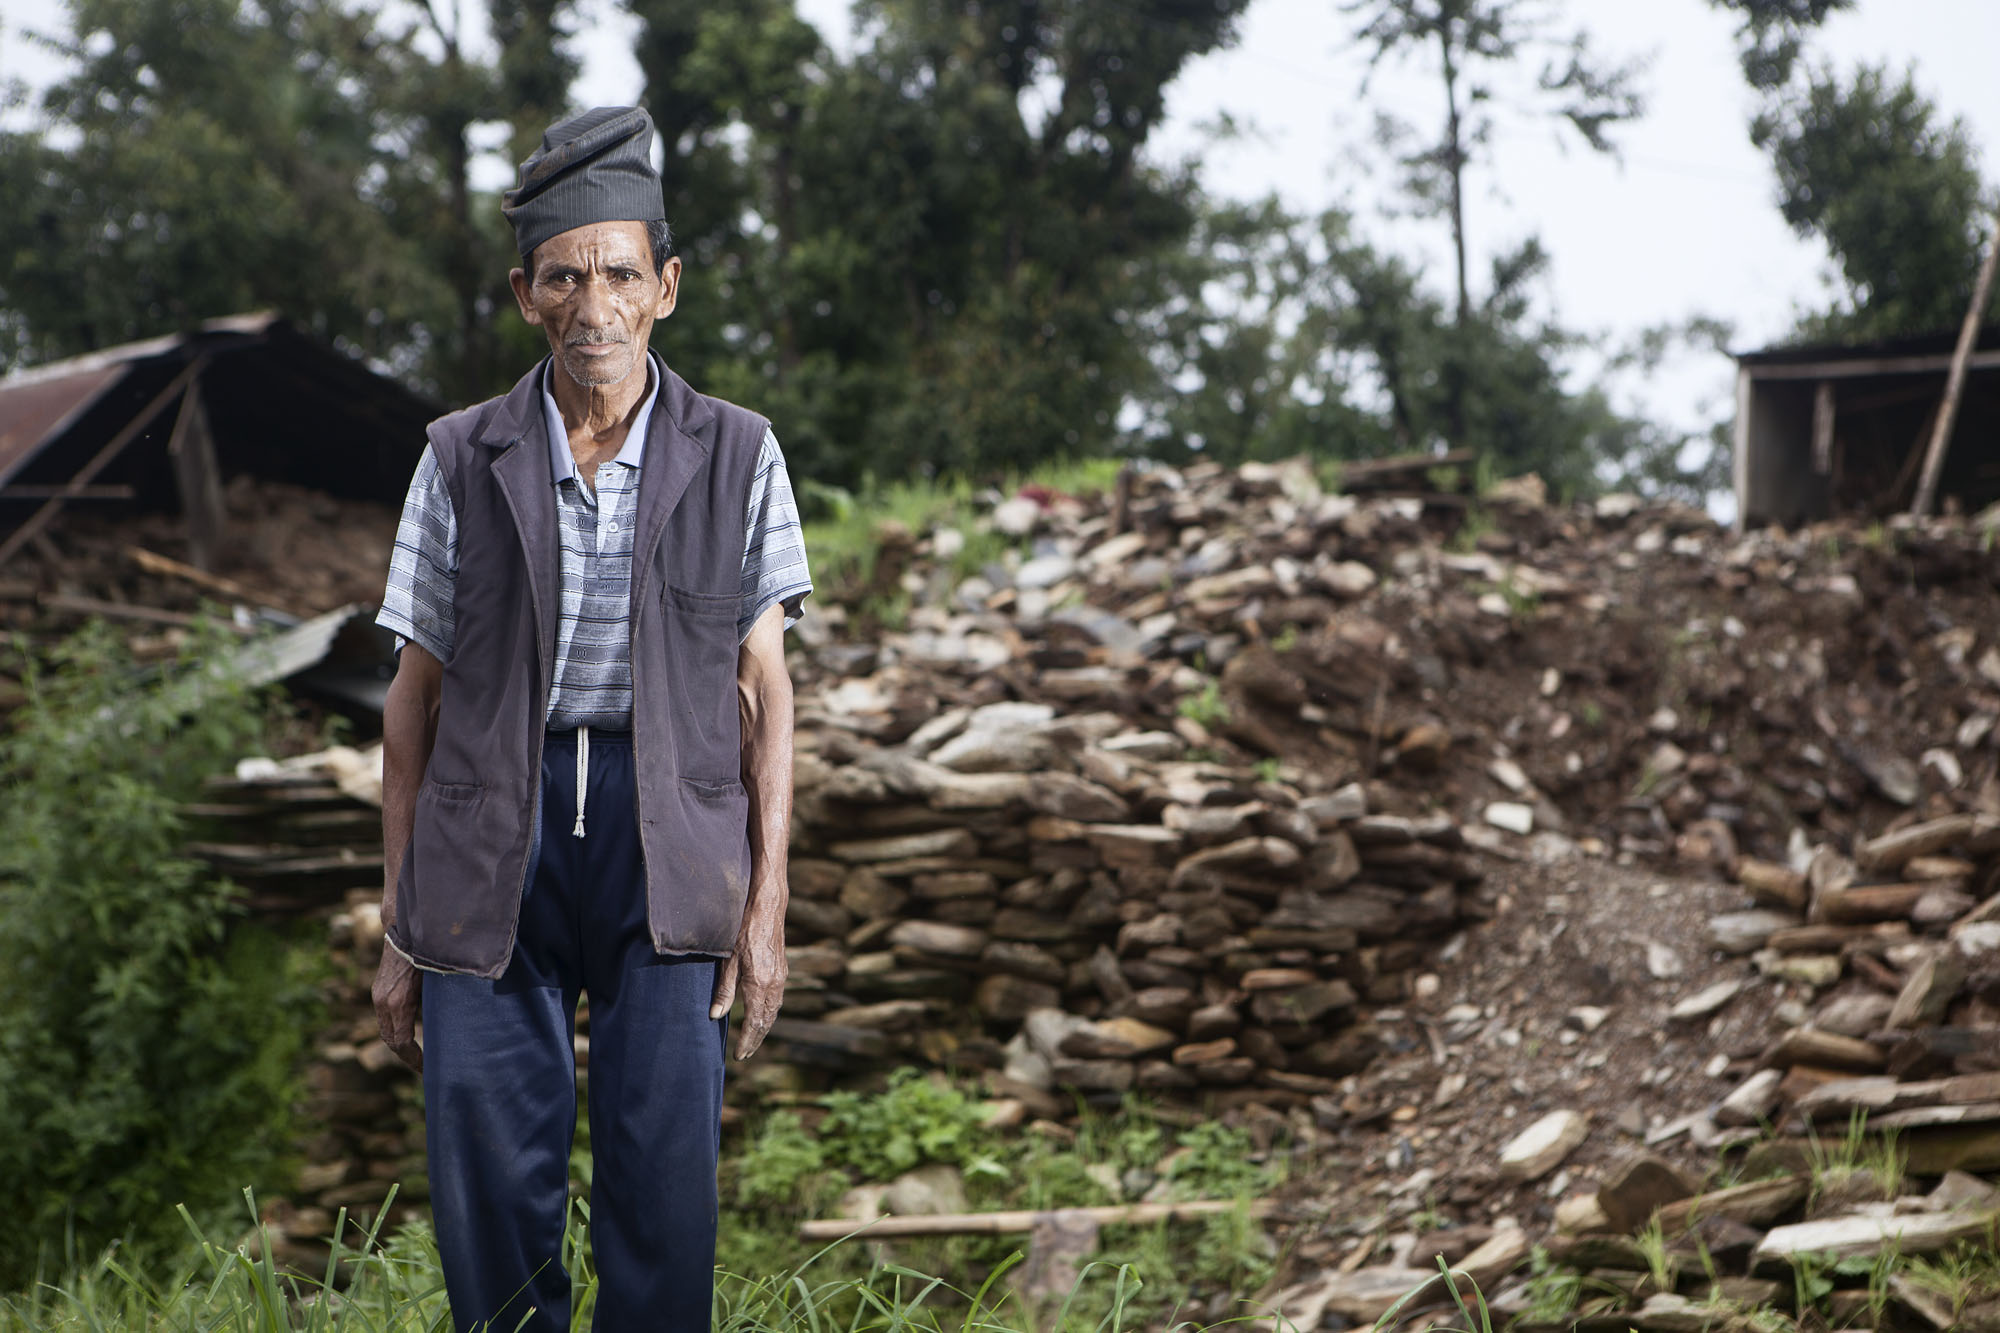 """Prembahadur Shrestha age 65 stands where his home once was. """"When I came here to see my home, I couldn't see, I just cried. Now I am not feeling so good just thinking how can I rebuild how to live again."""" Tauthali Village, Sindupalchowk District, Nepal. August 5, 2015."""